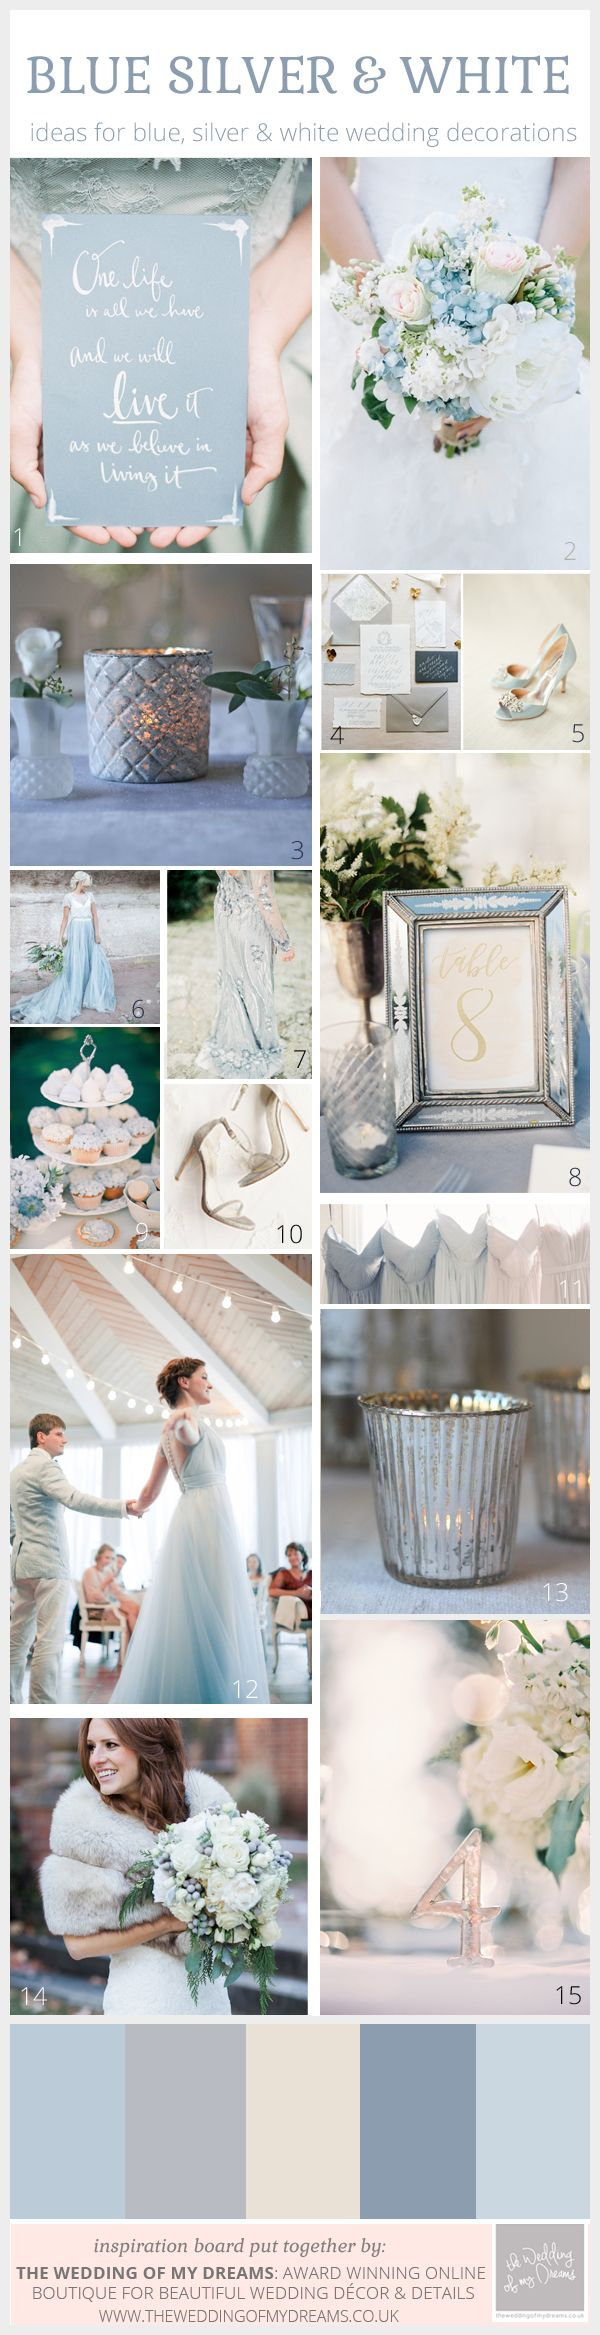 Enchanting Winter Wedding Colour Scheme: White, Blue and Silver